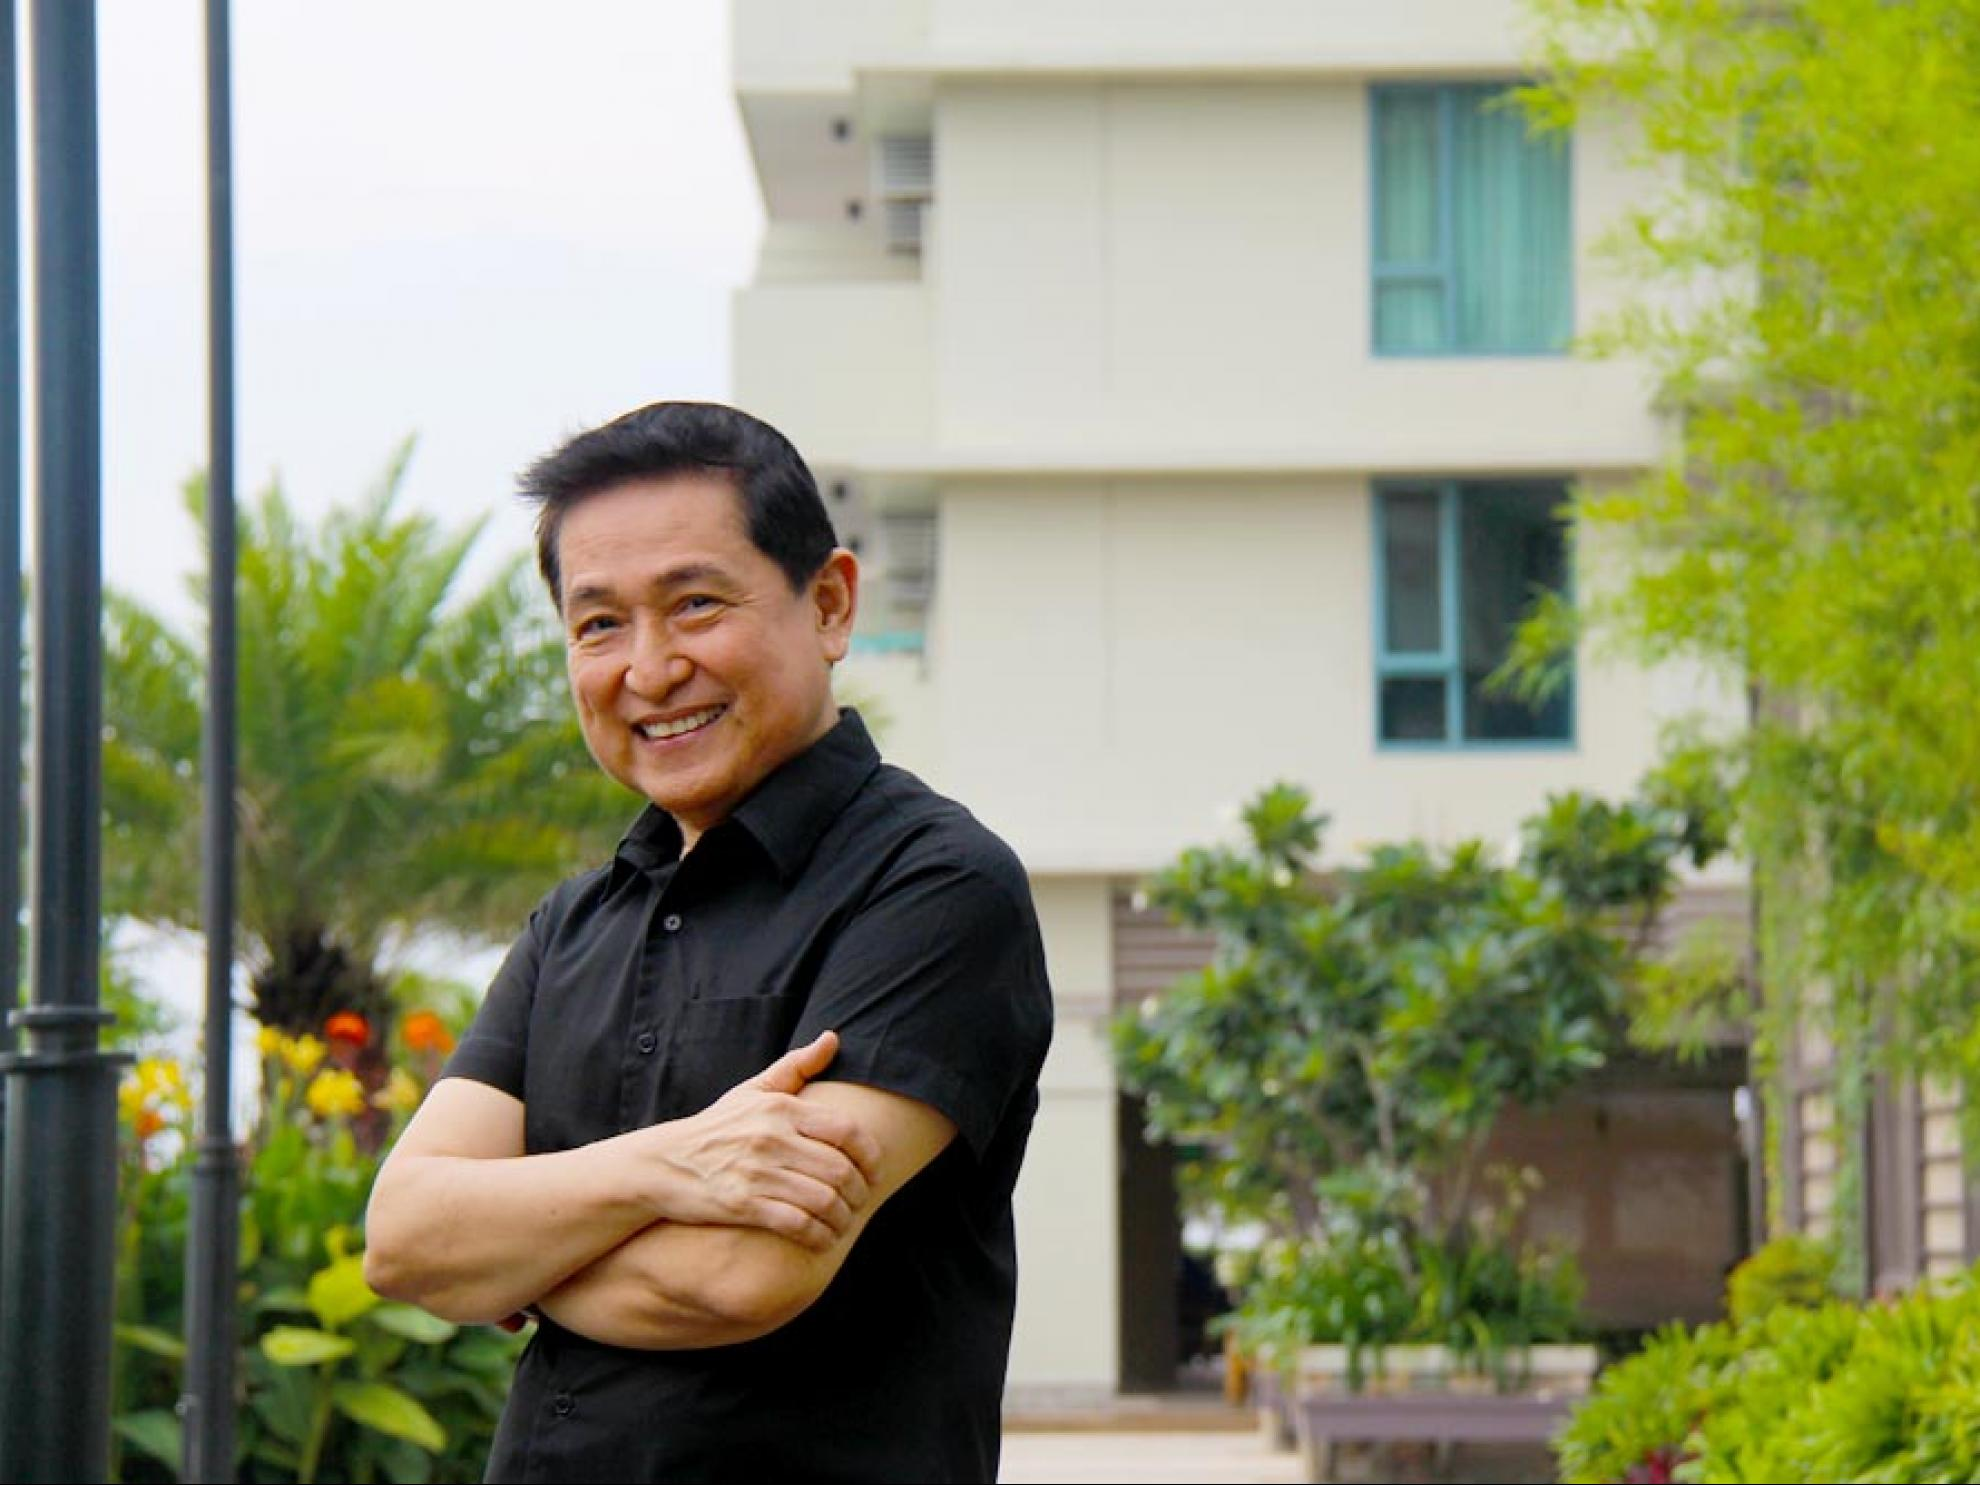 Tivoli Garden Residences' community love delights young retiree